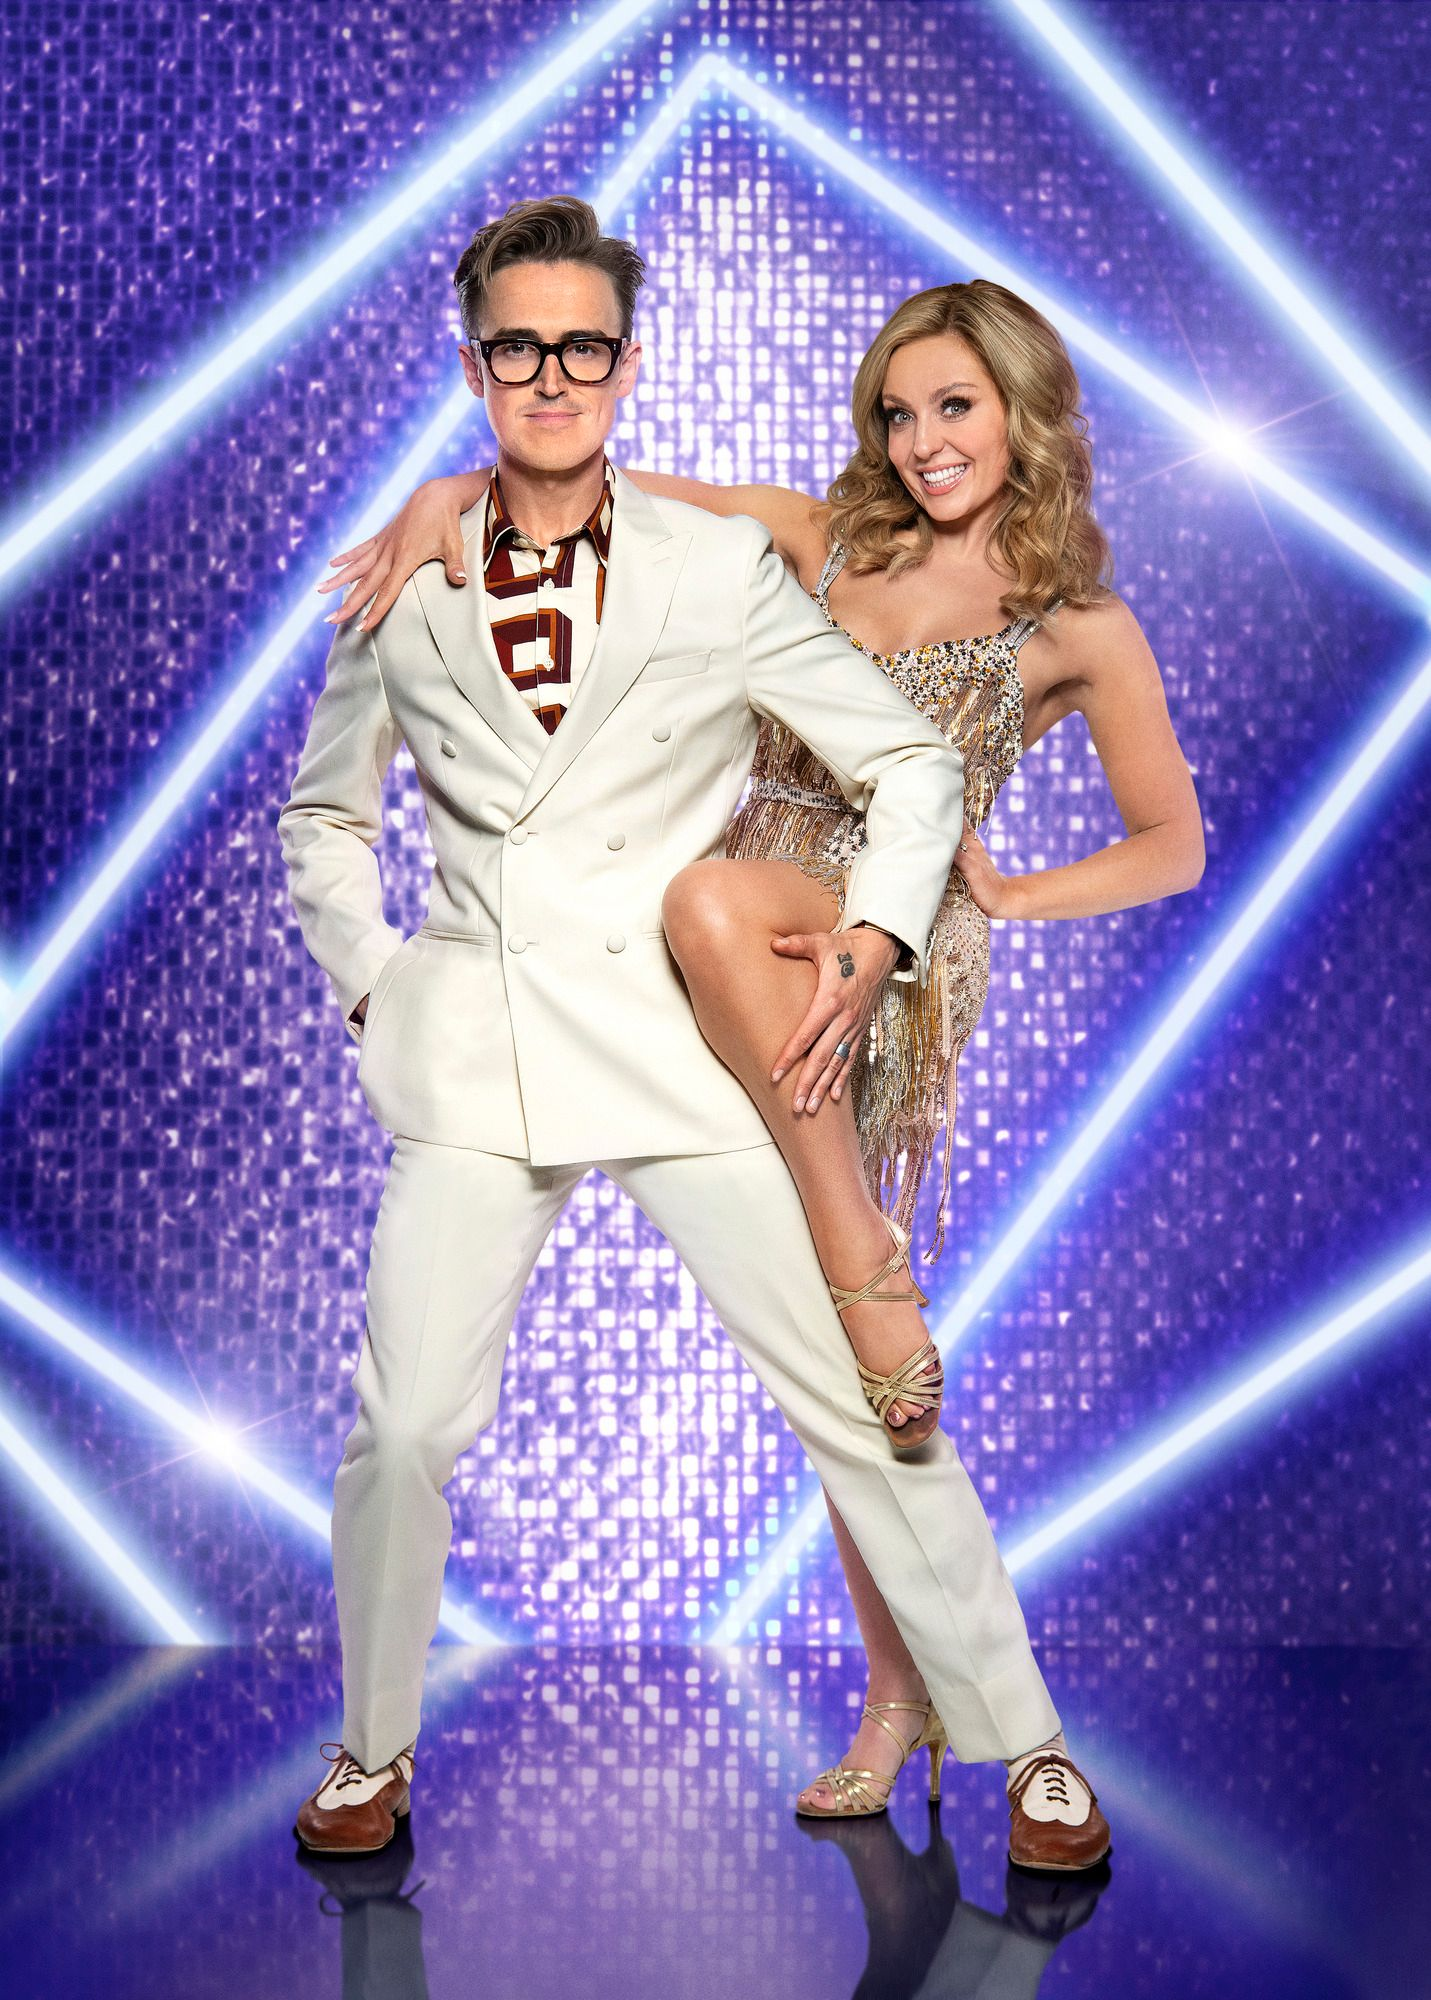 Strictly Come Dancing Stars Tom Fletcher And Amy Dowden Test Positive Covid-19